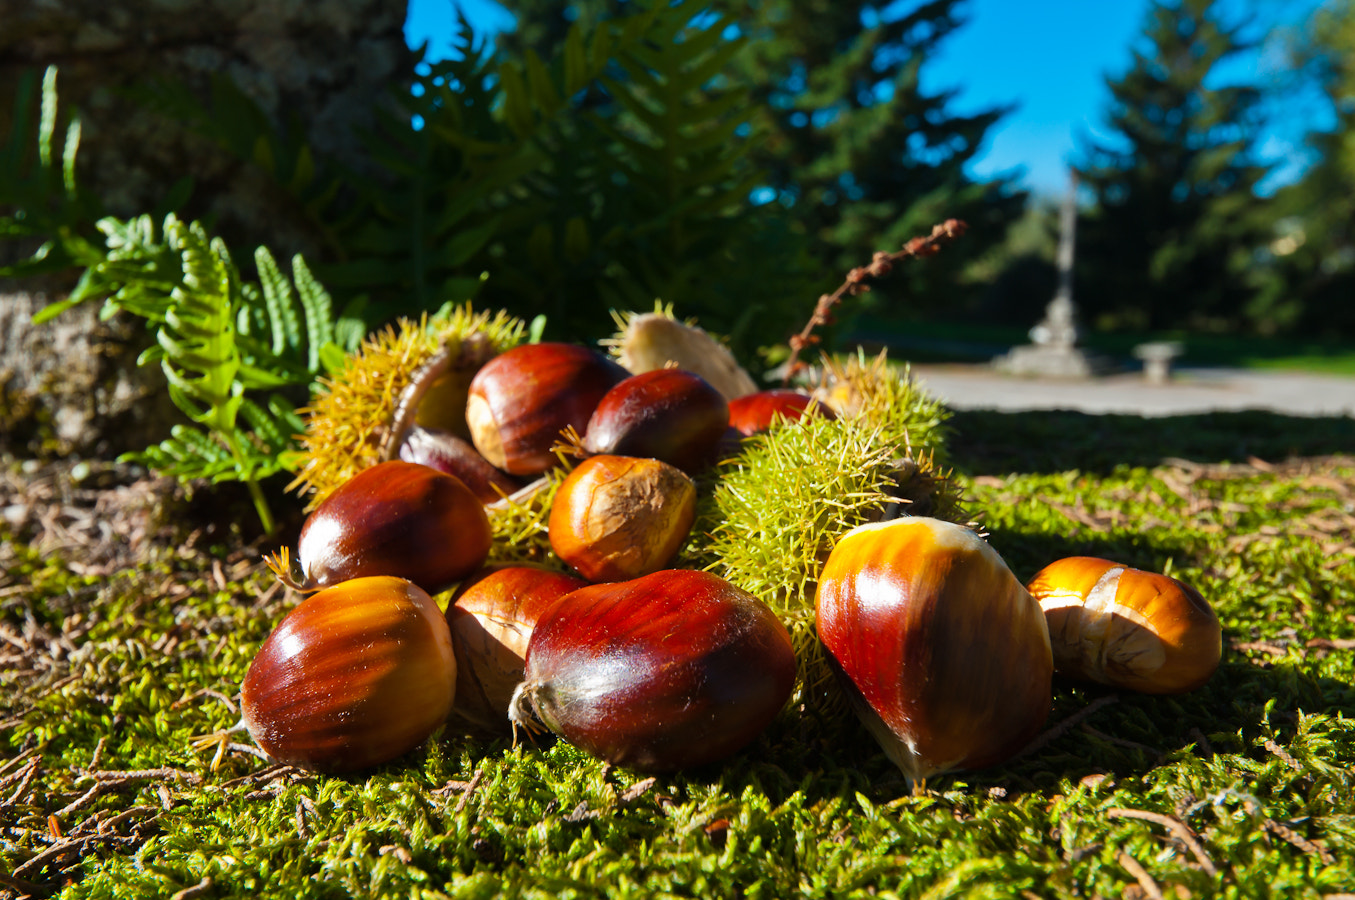 Photograph Autumn fruit by Jose Angel Niño Martinez on 500px